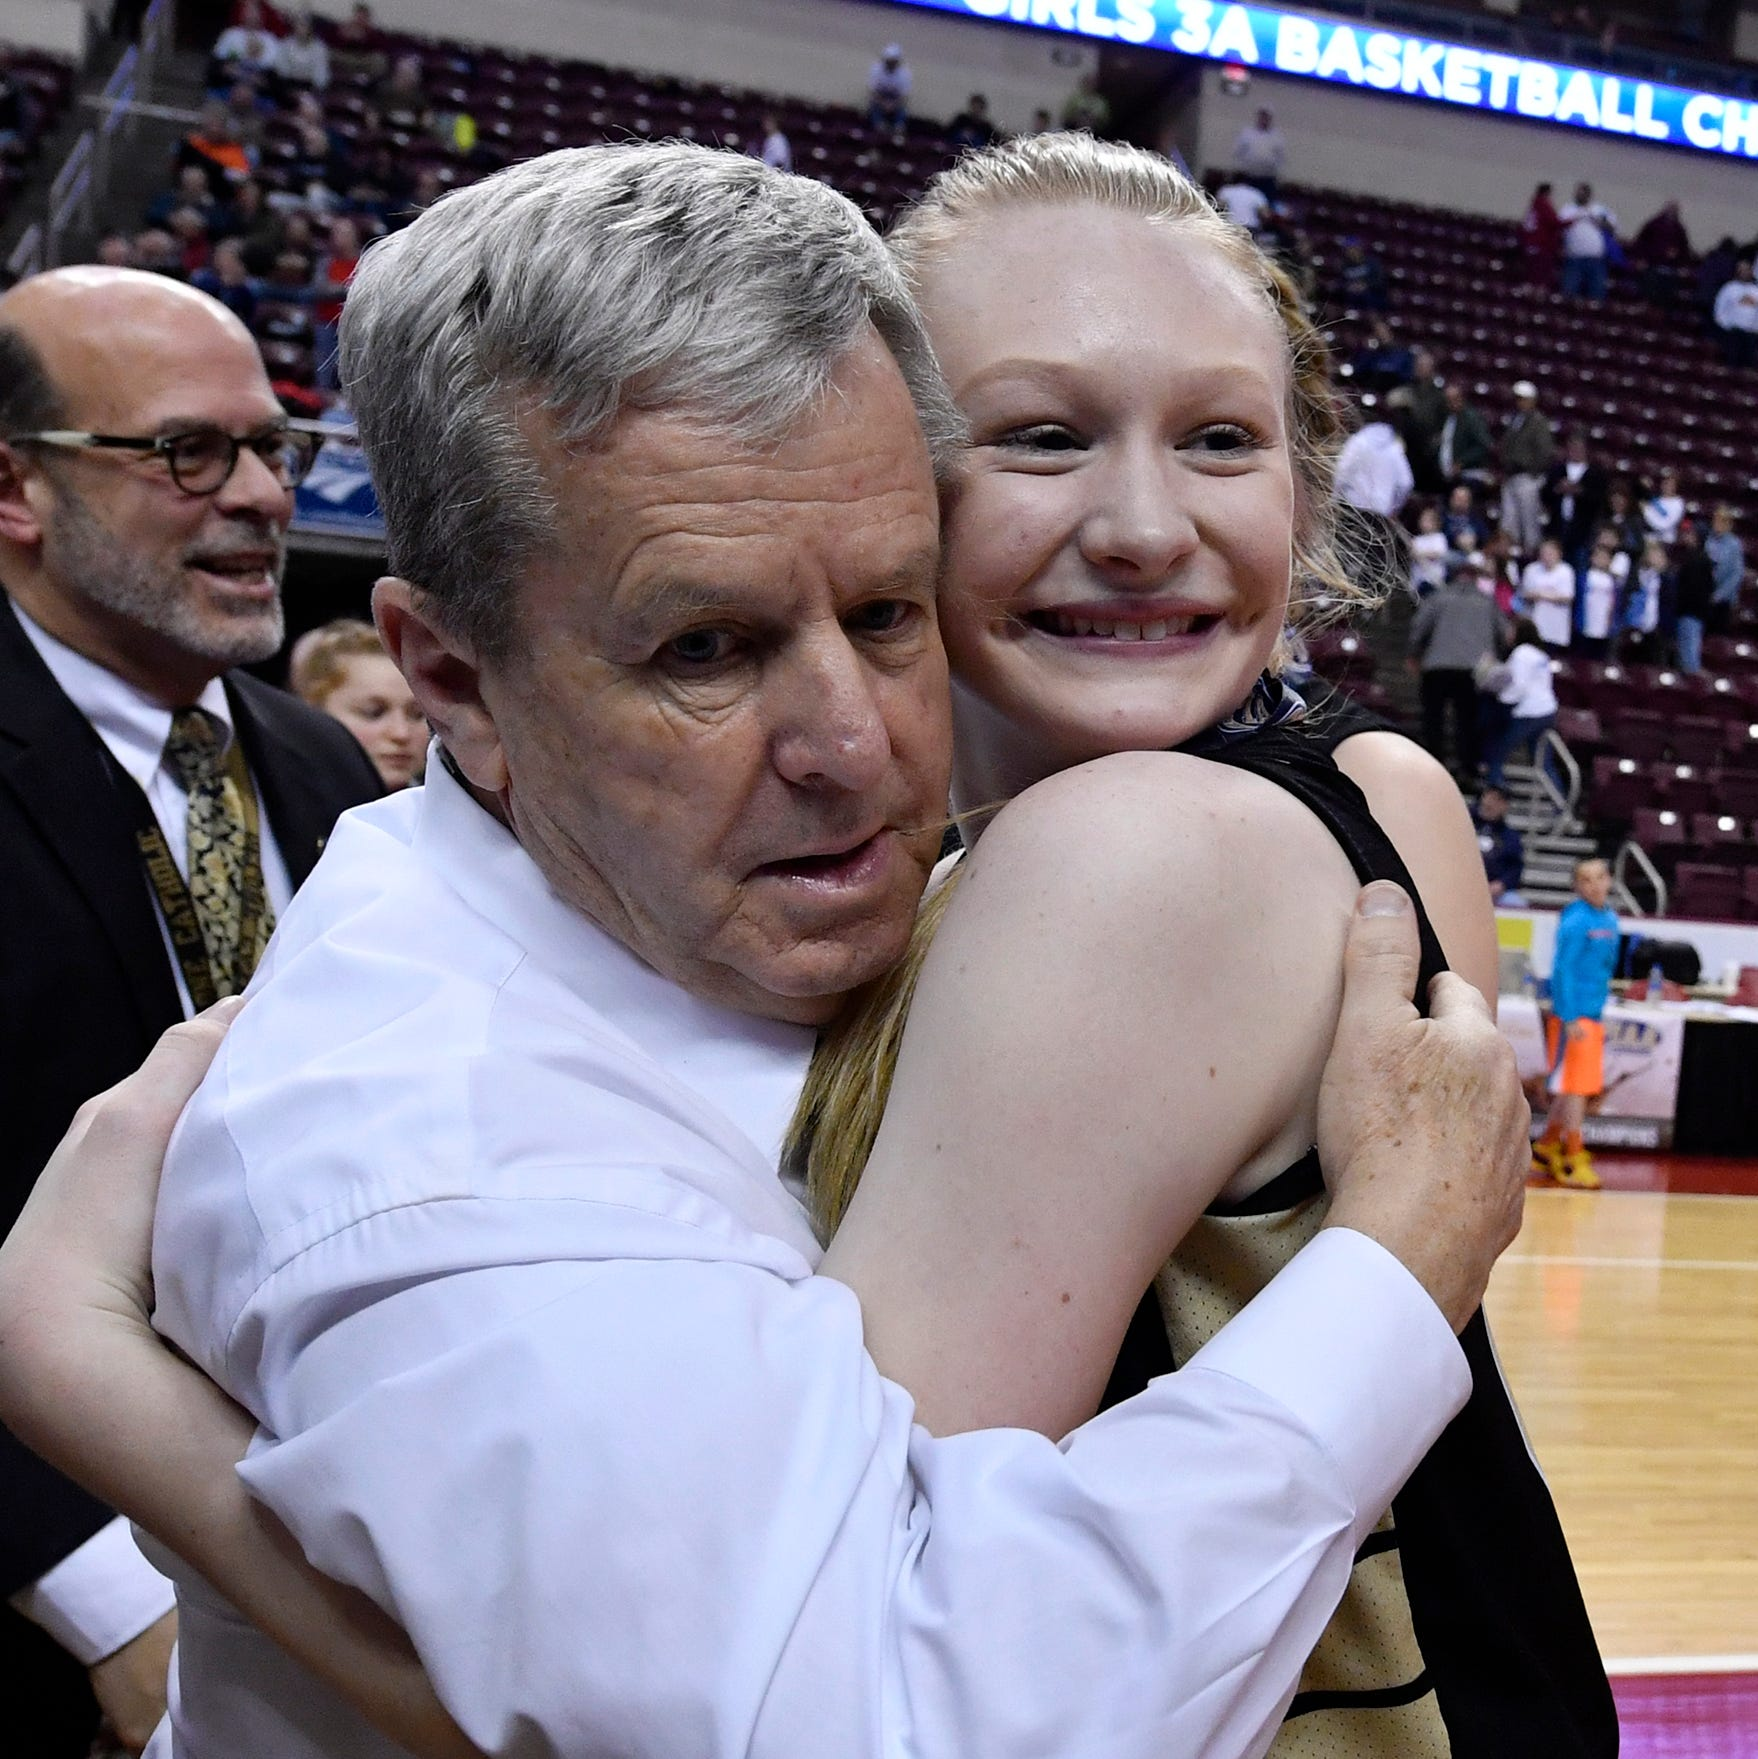 Delone Catholic girls' basketball team evolves from good to great during state title run